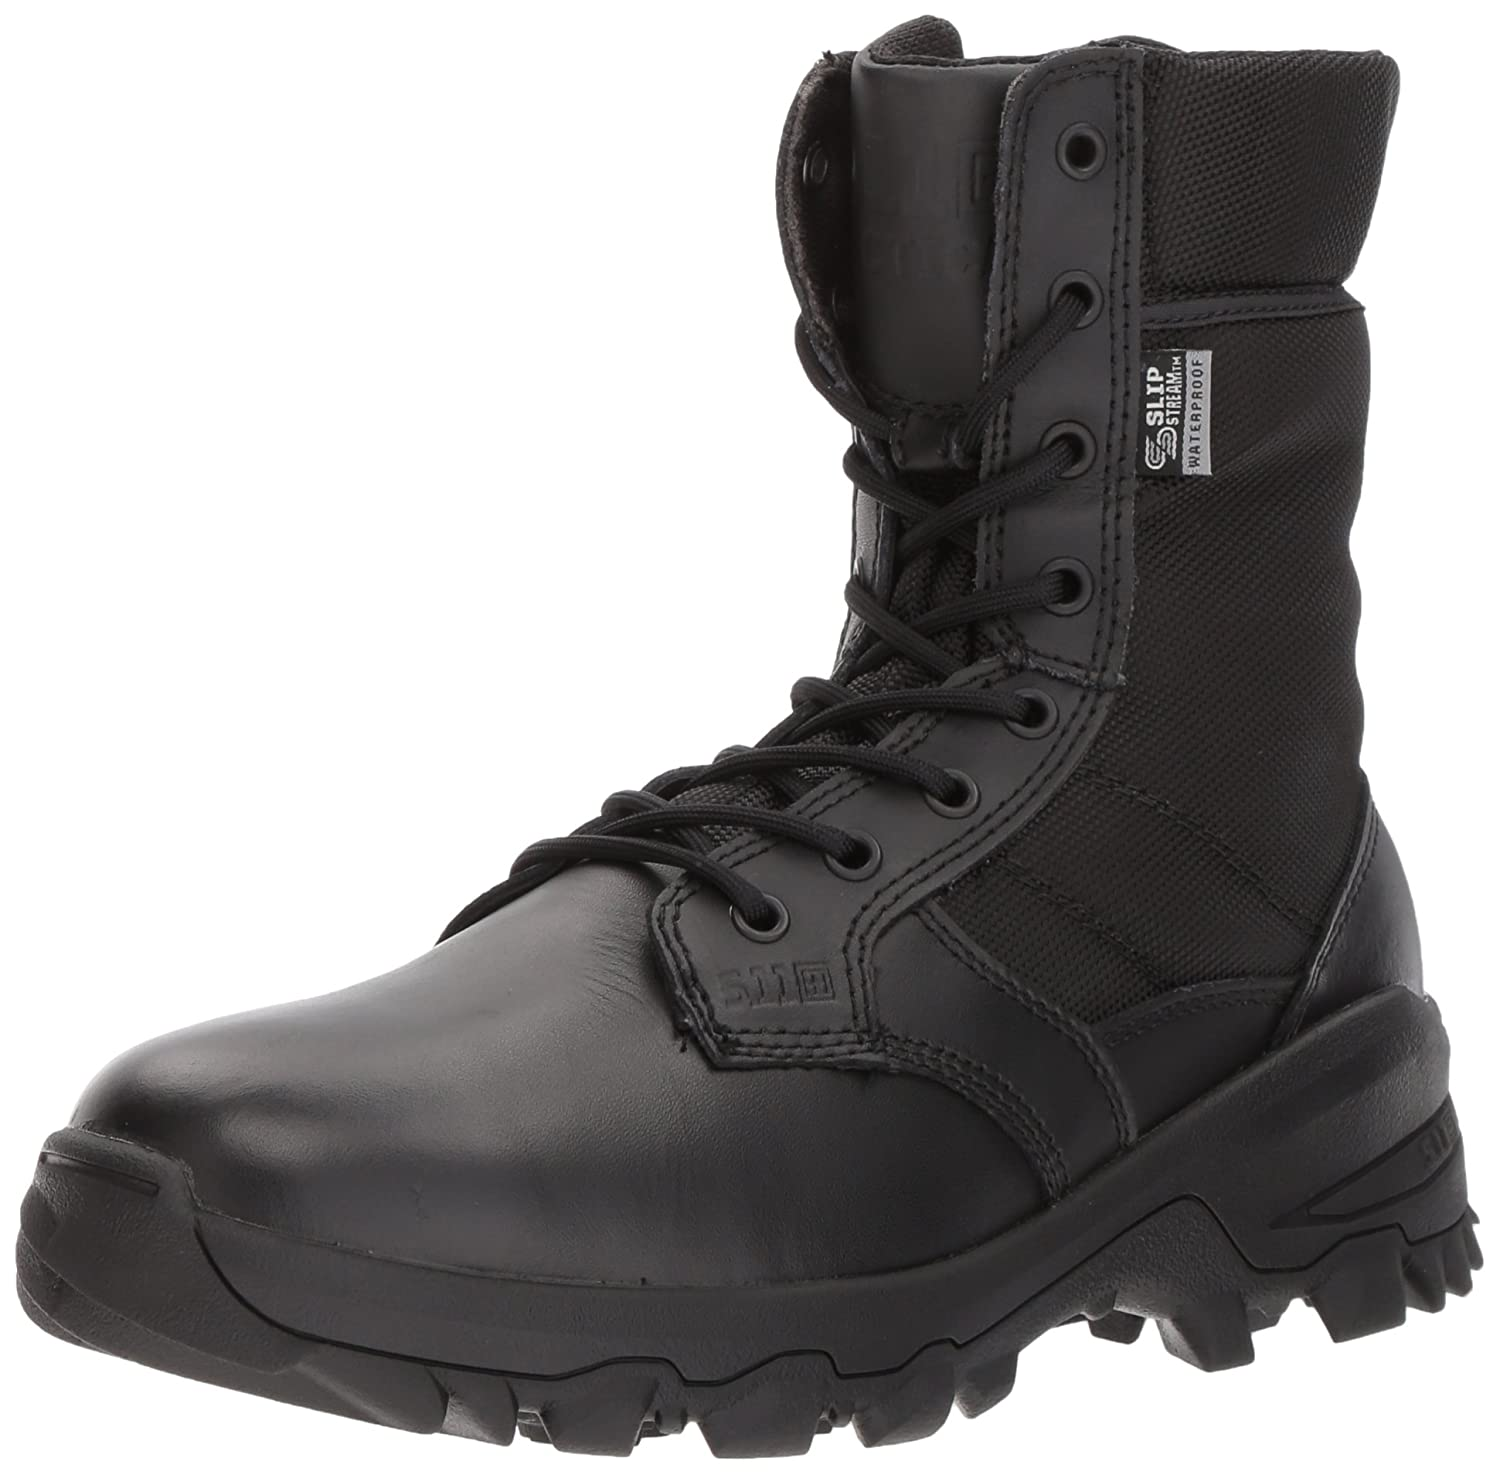 5.11 Tactical Speed 3.0 Waterproof Stiefel